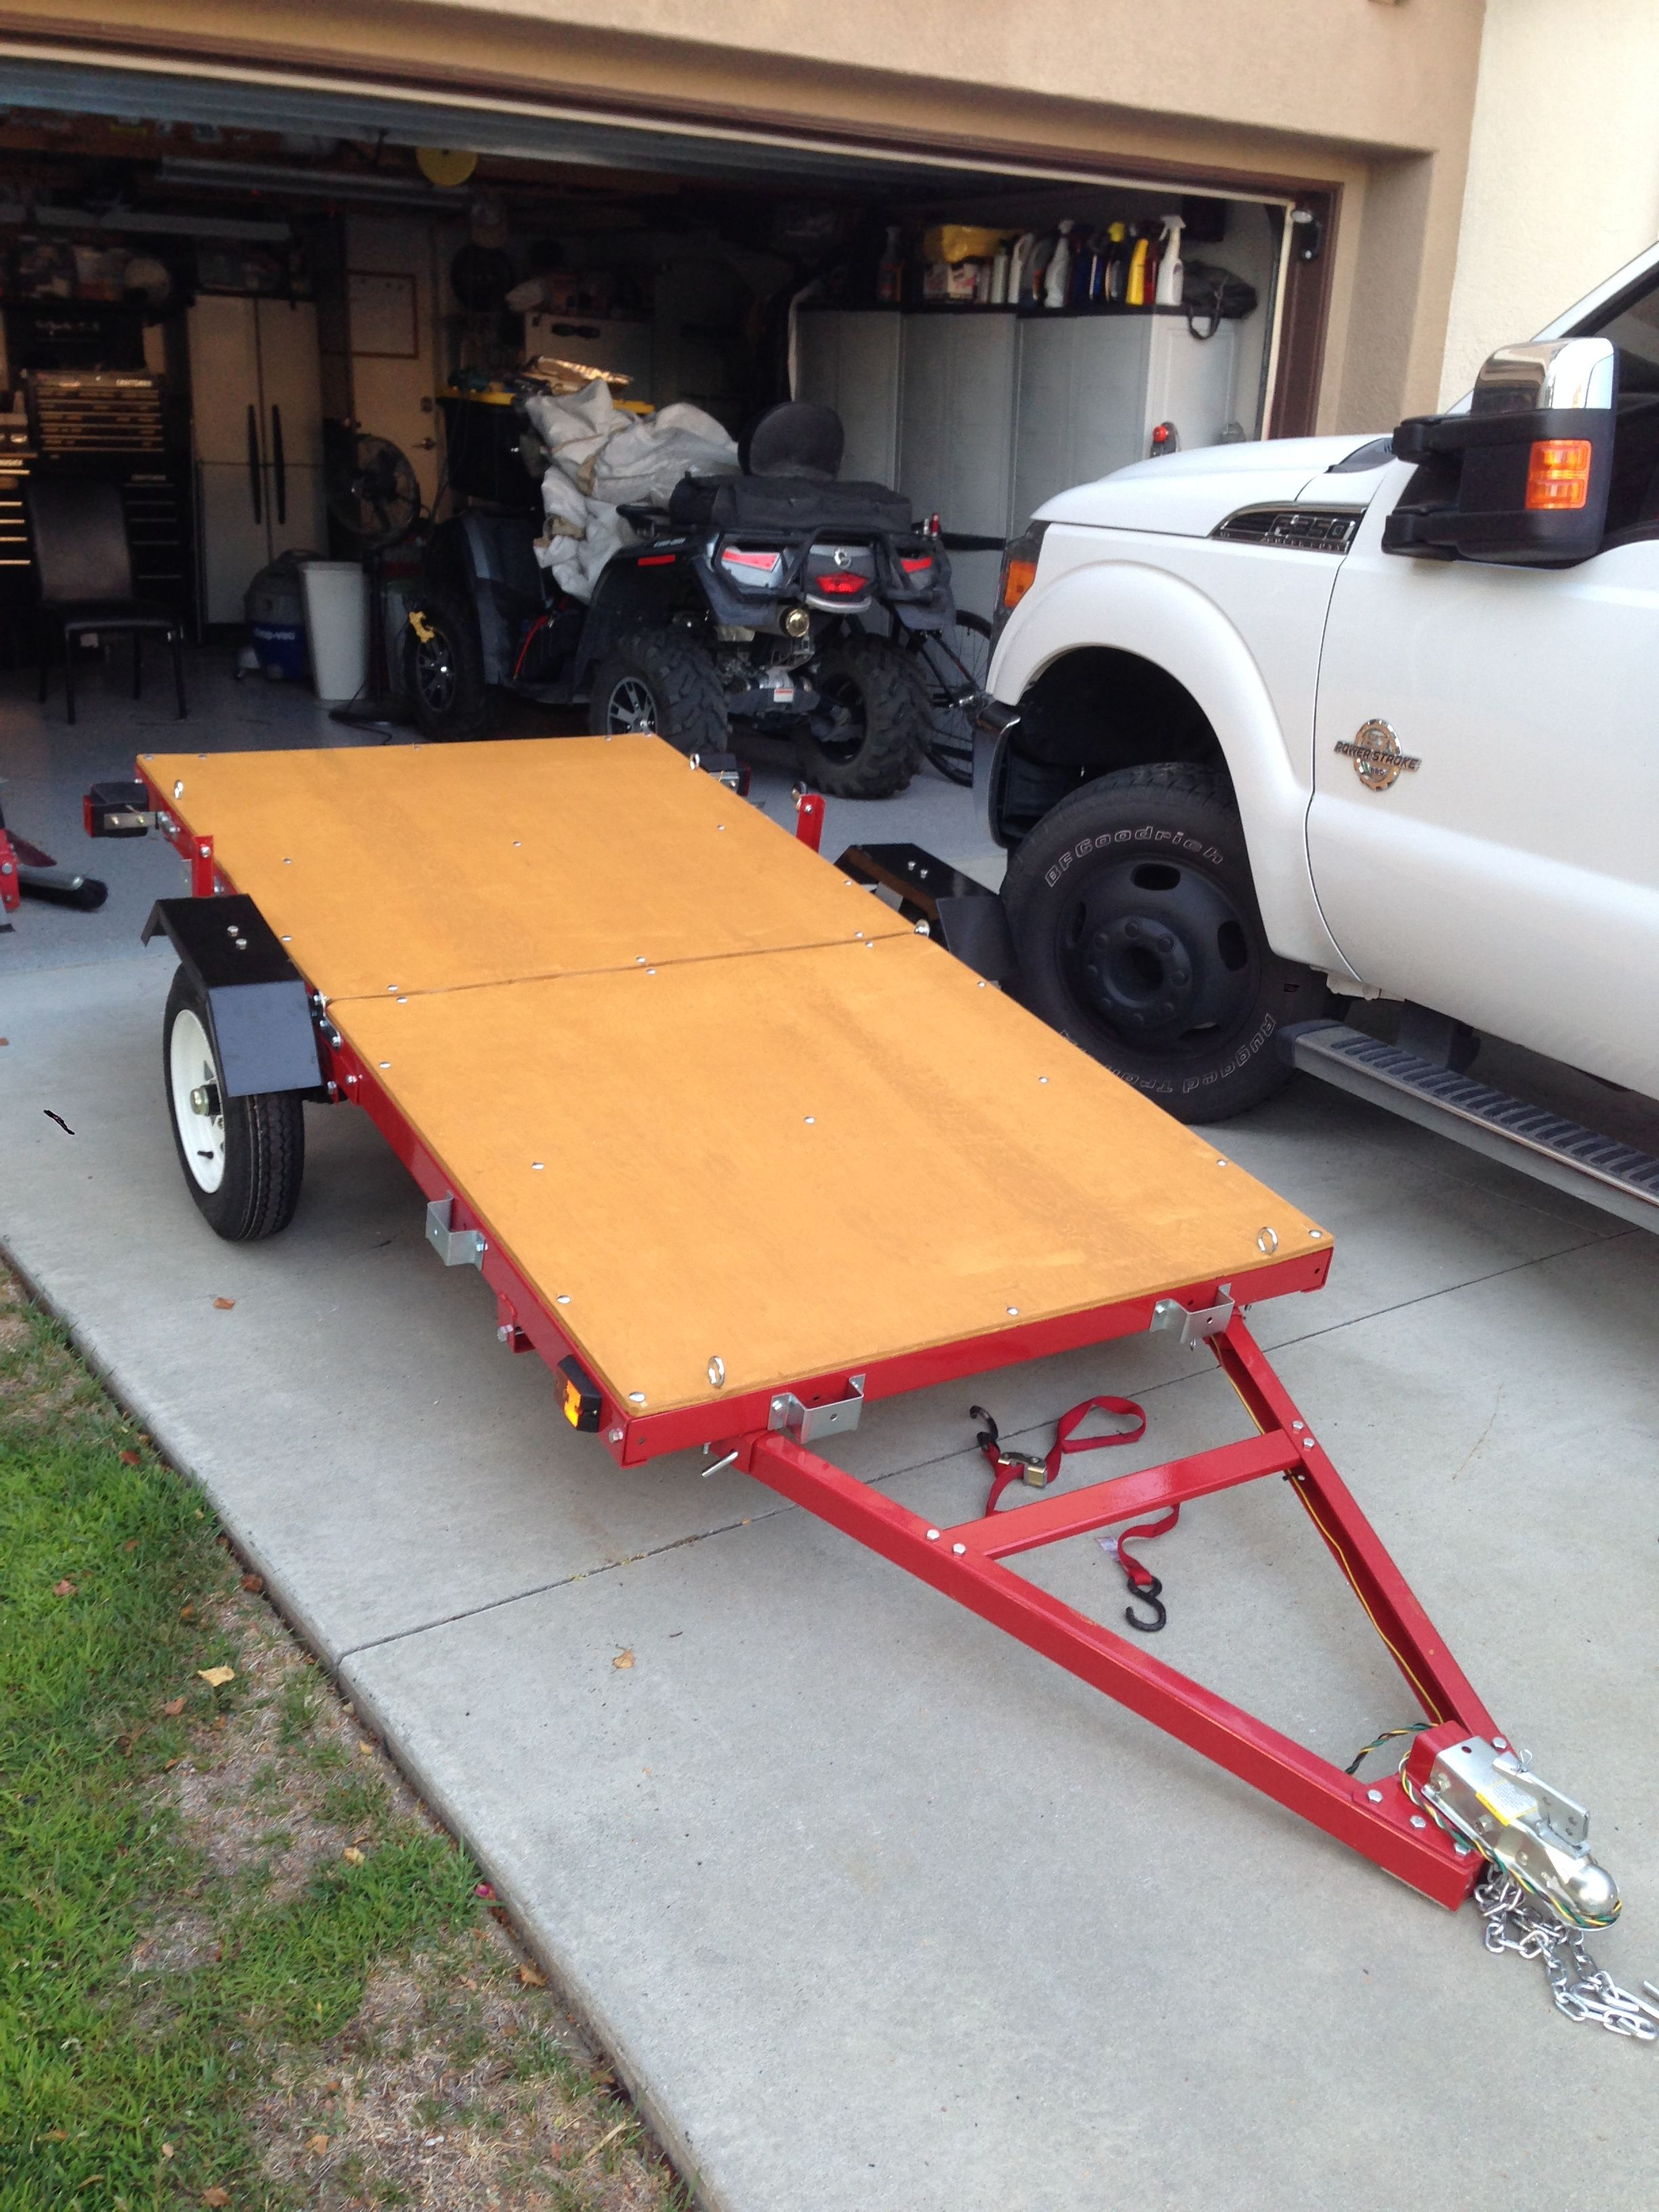 07a7a42d3ebc08edc4e16909acf70bce nice folding trailer solves storage and transportation issues